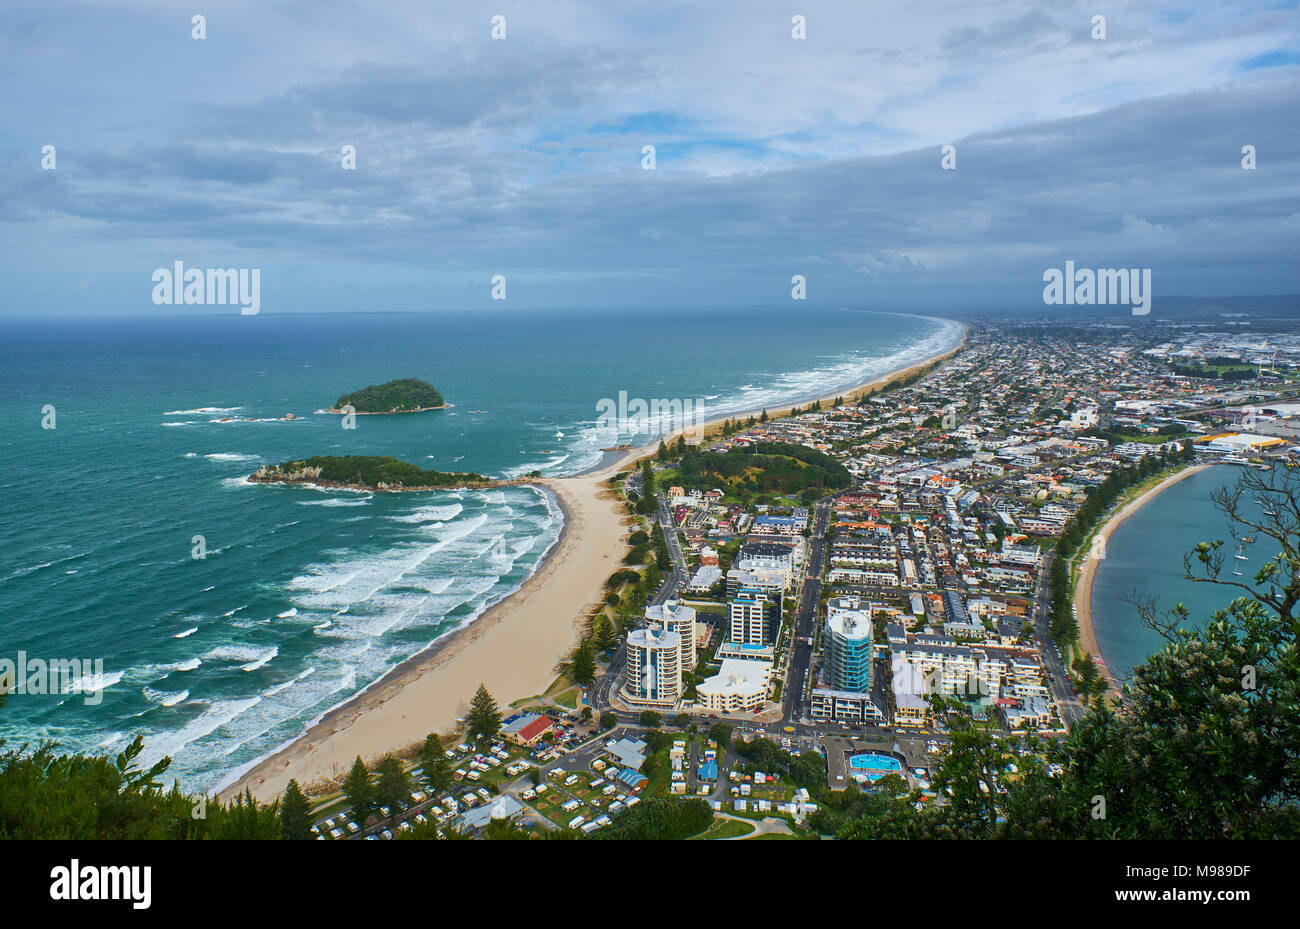 New Zealand, North Island, Tauranga as seen from Mount Maunganui - Stock Image